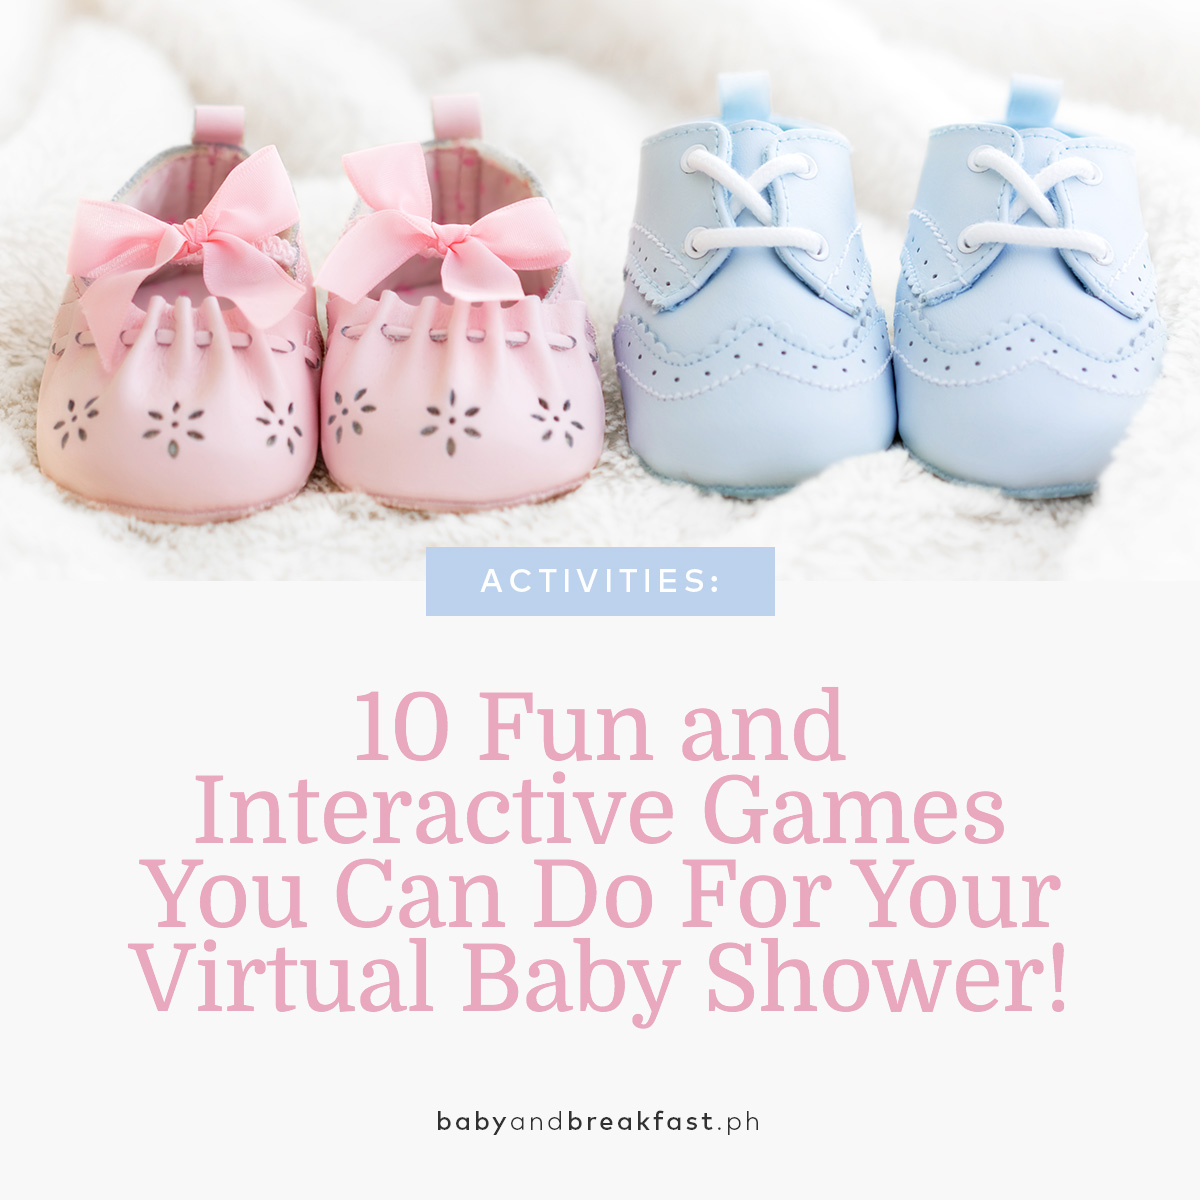 10 Fun and Interactive Games You Can Do For Your Virtual Baby Shower!